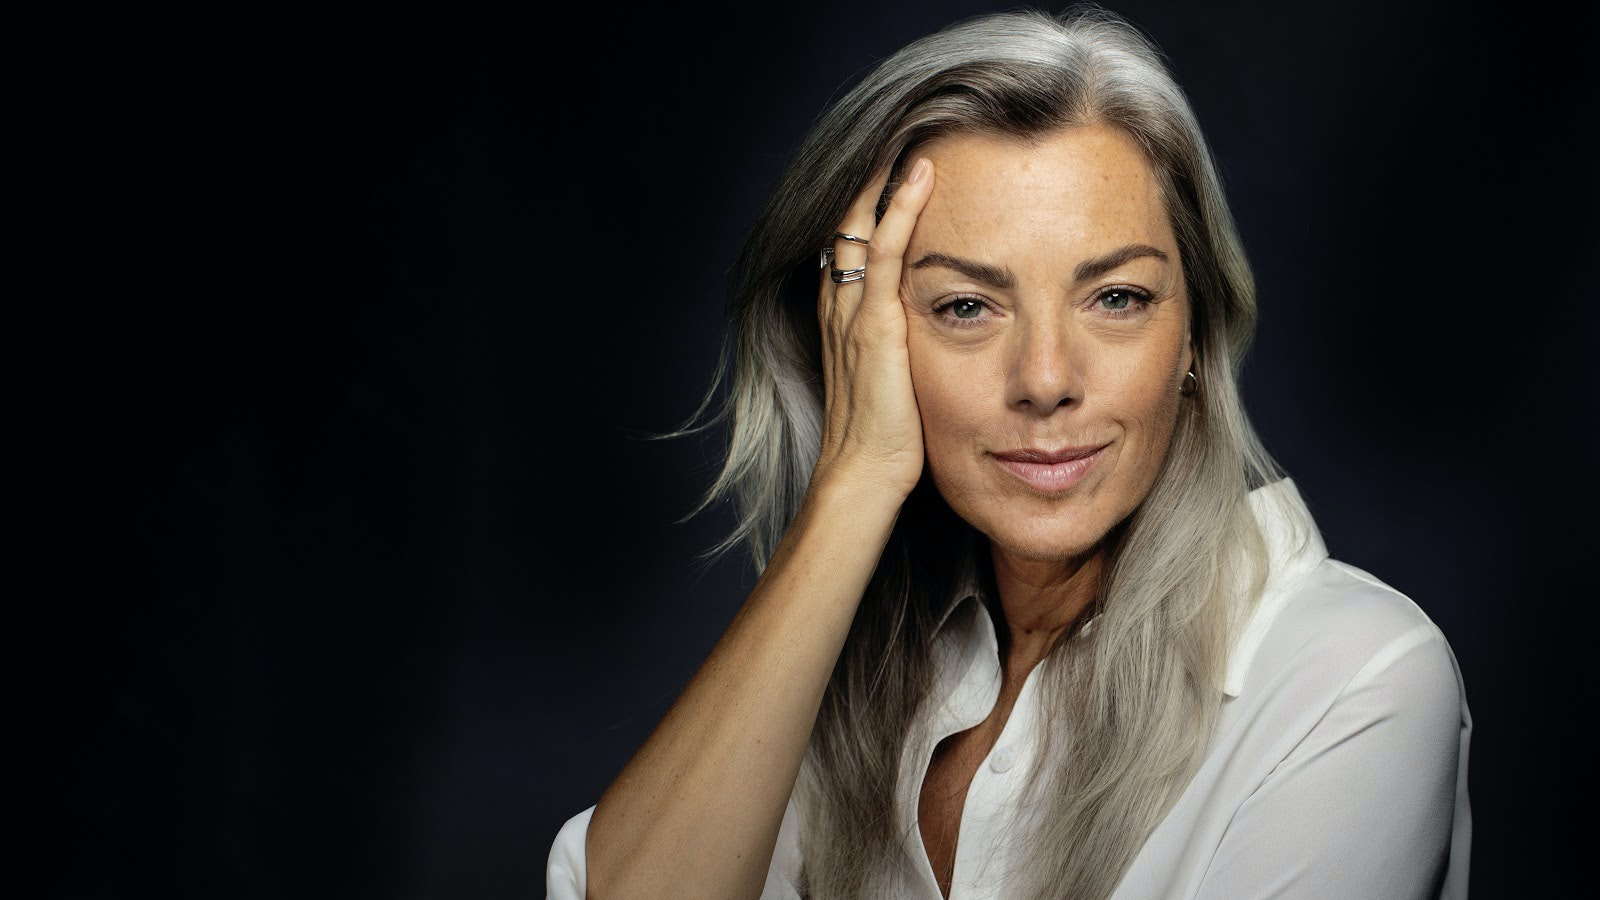 These Are the Real Reasons Your Hair Turns Grey